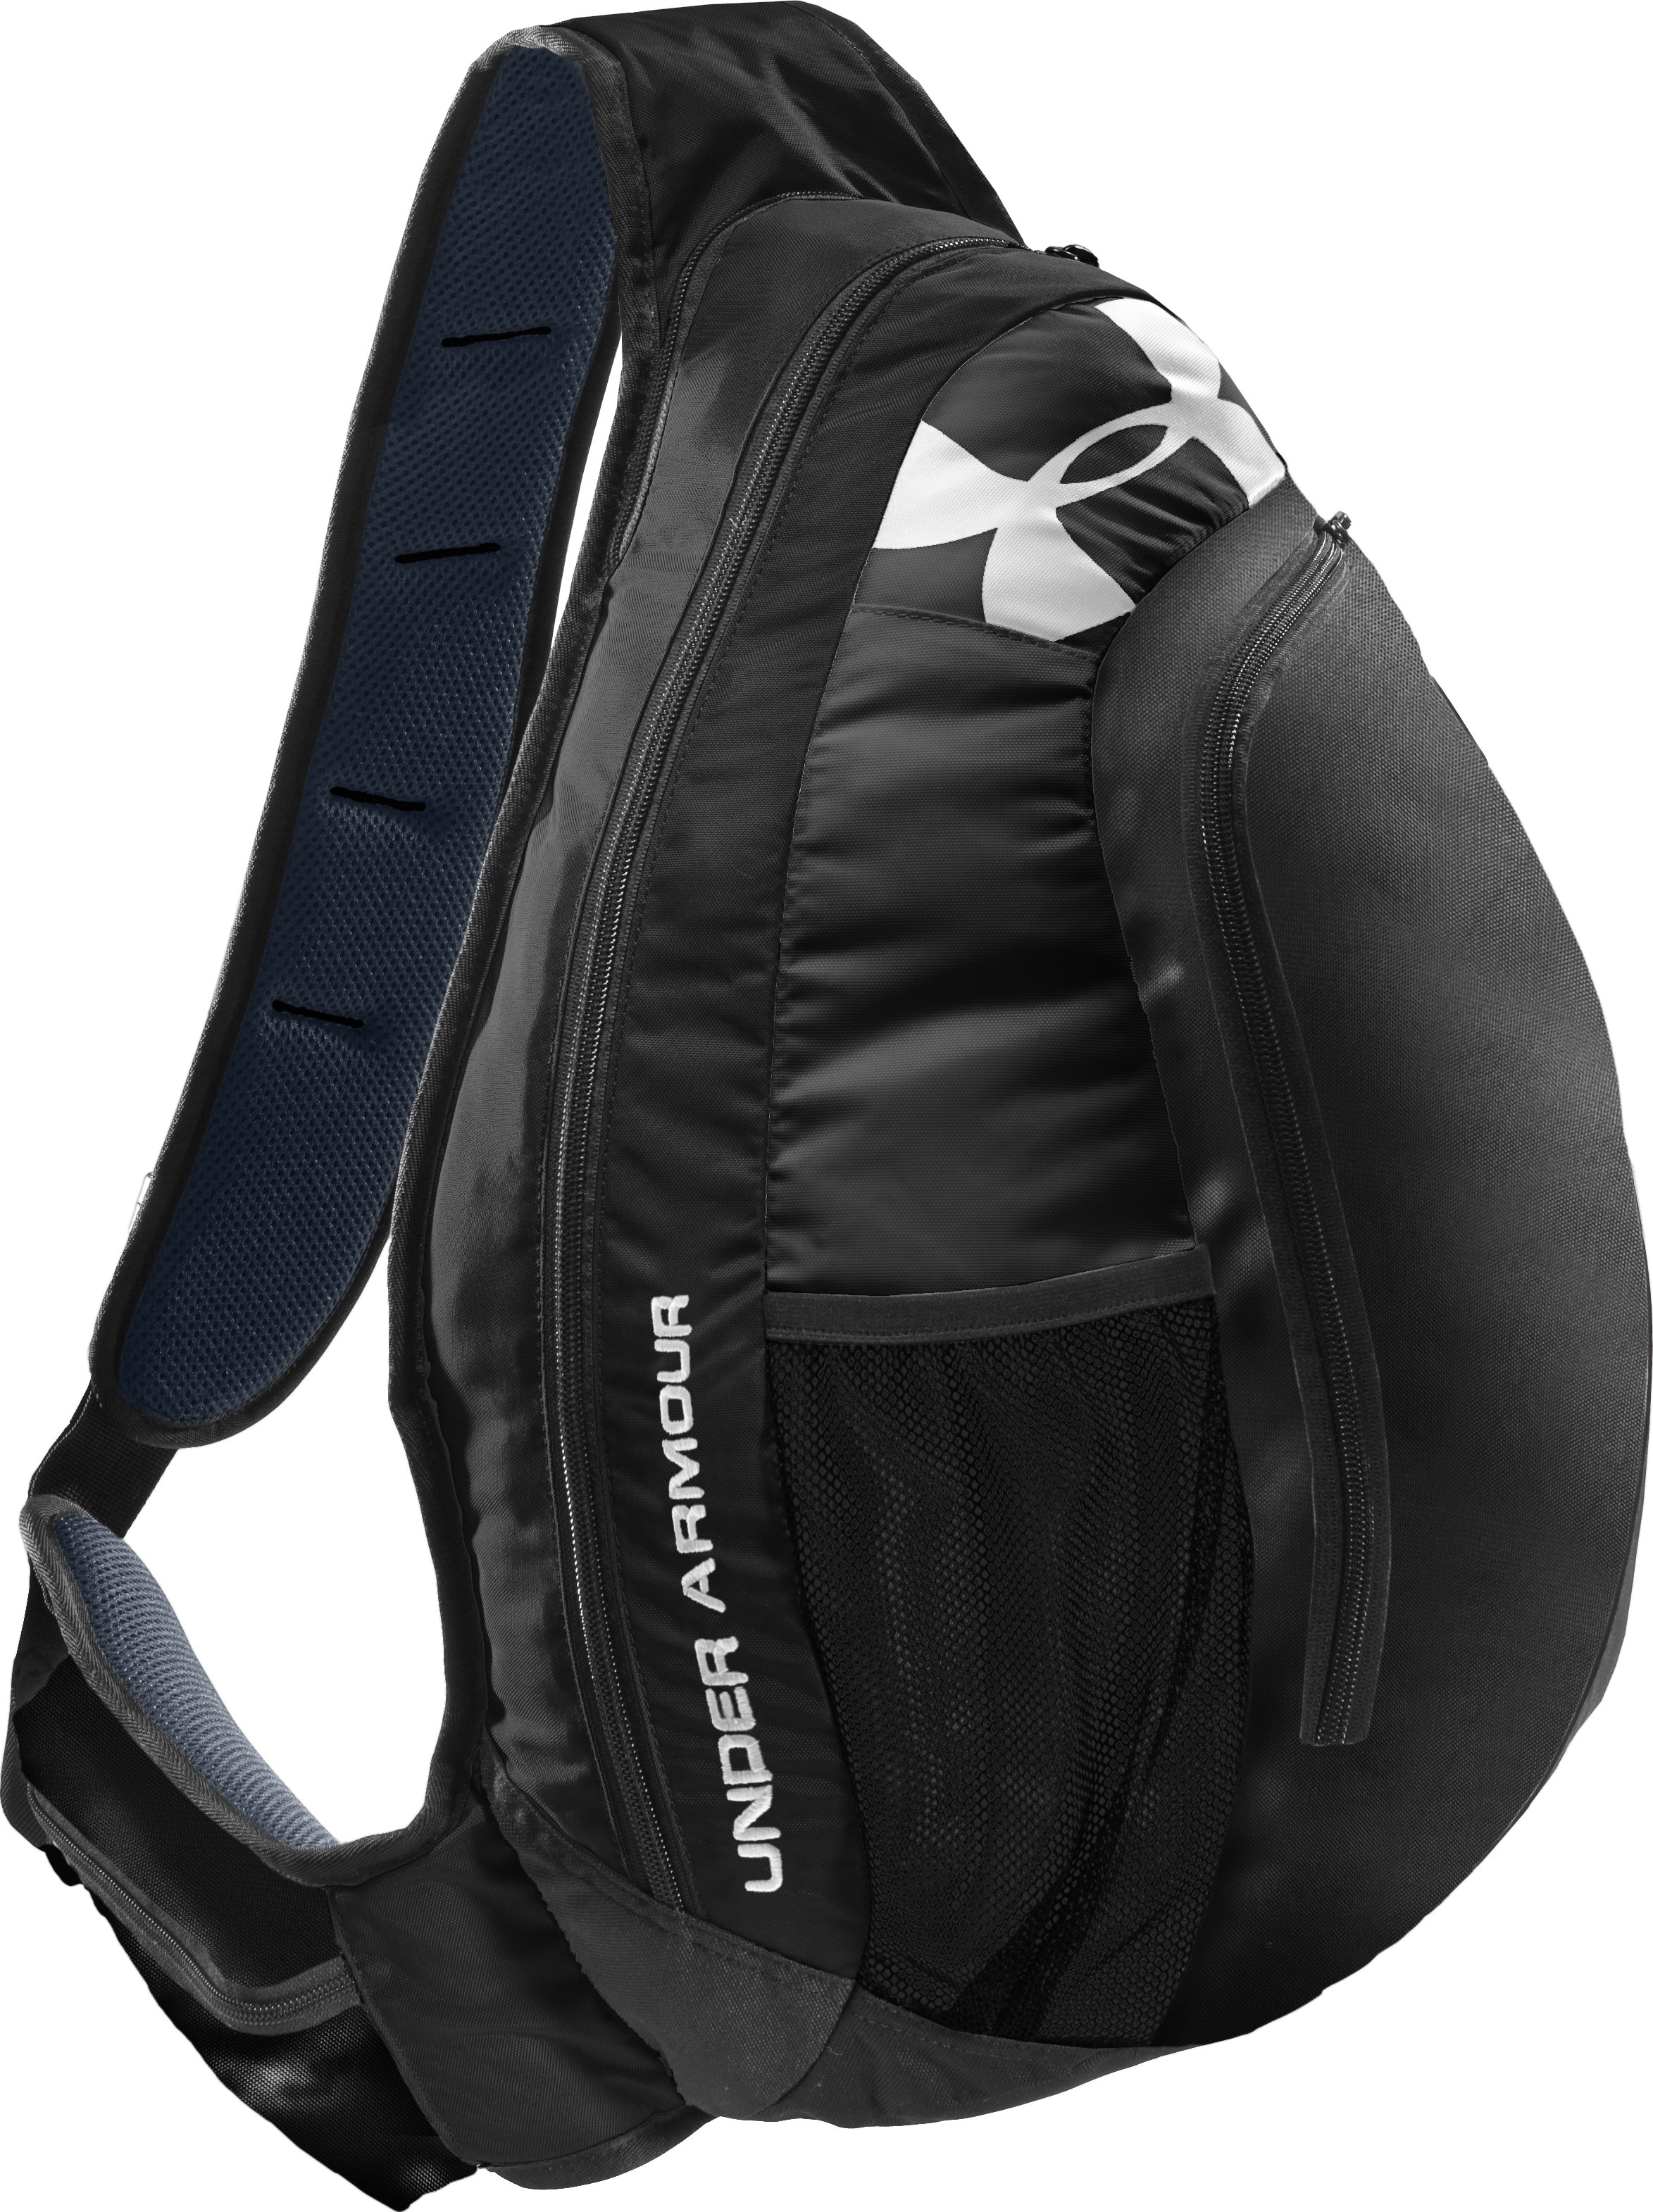 Khalon Sling Backpack, Black